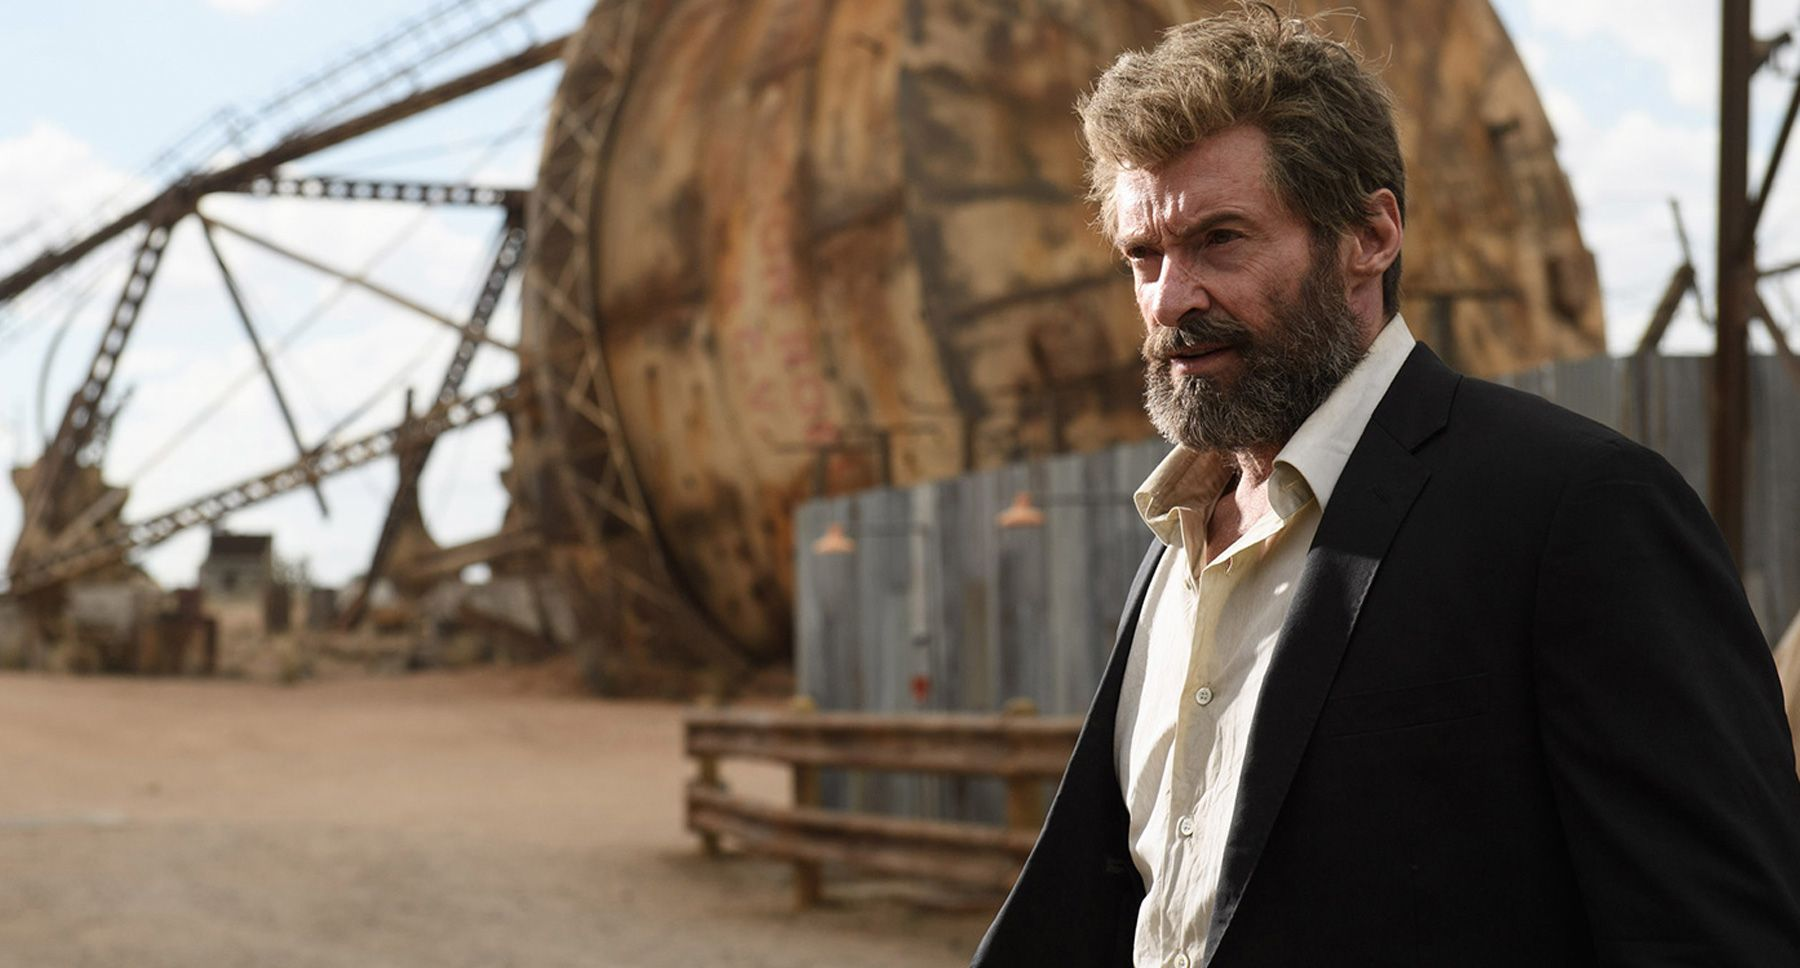 Logan nominated for Oscar